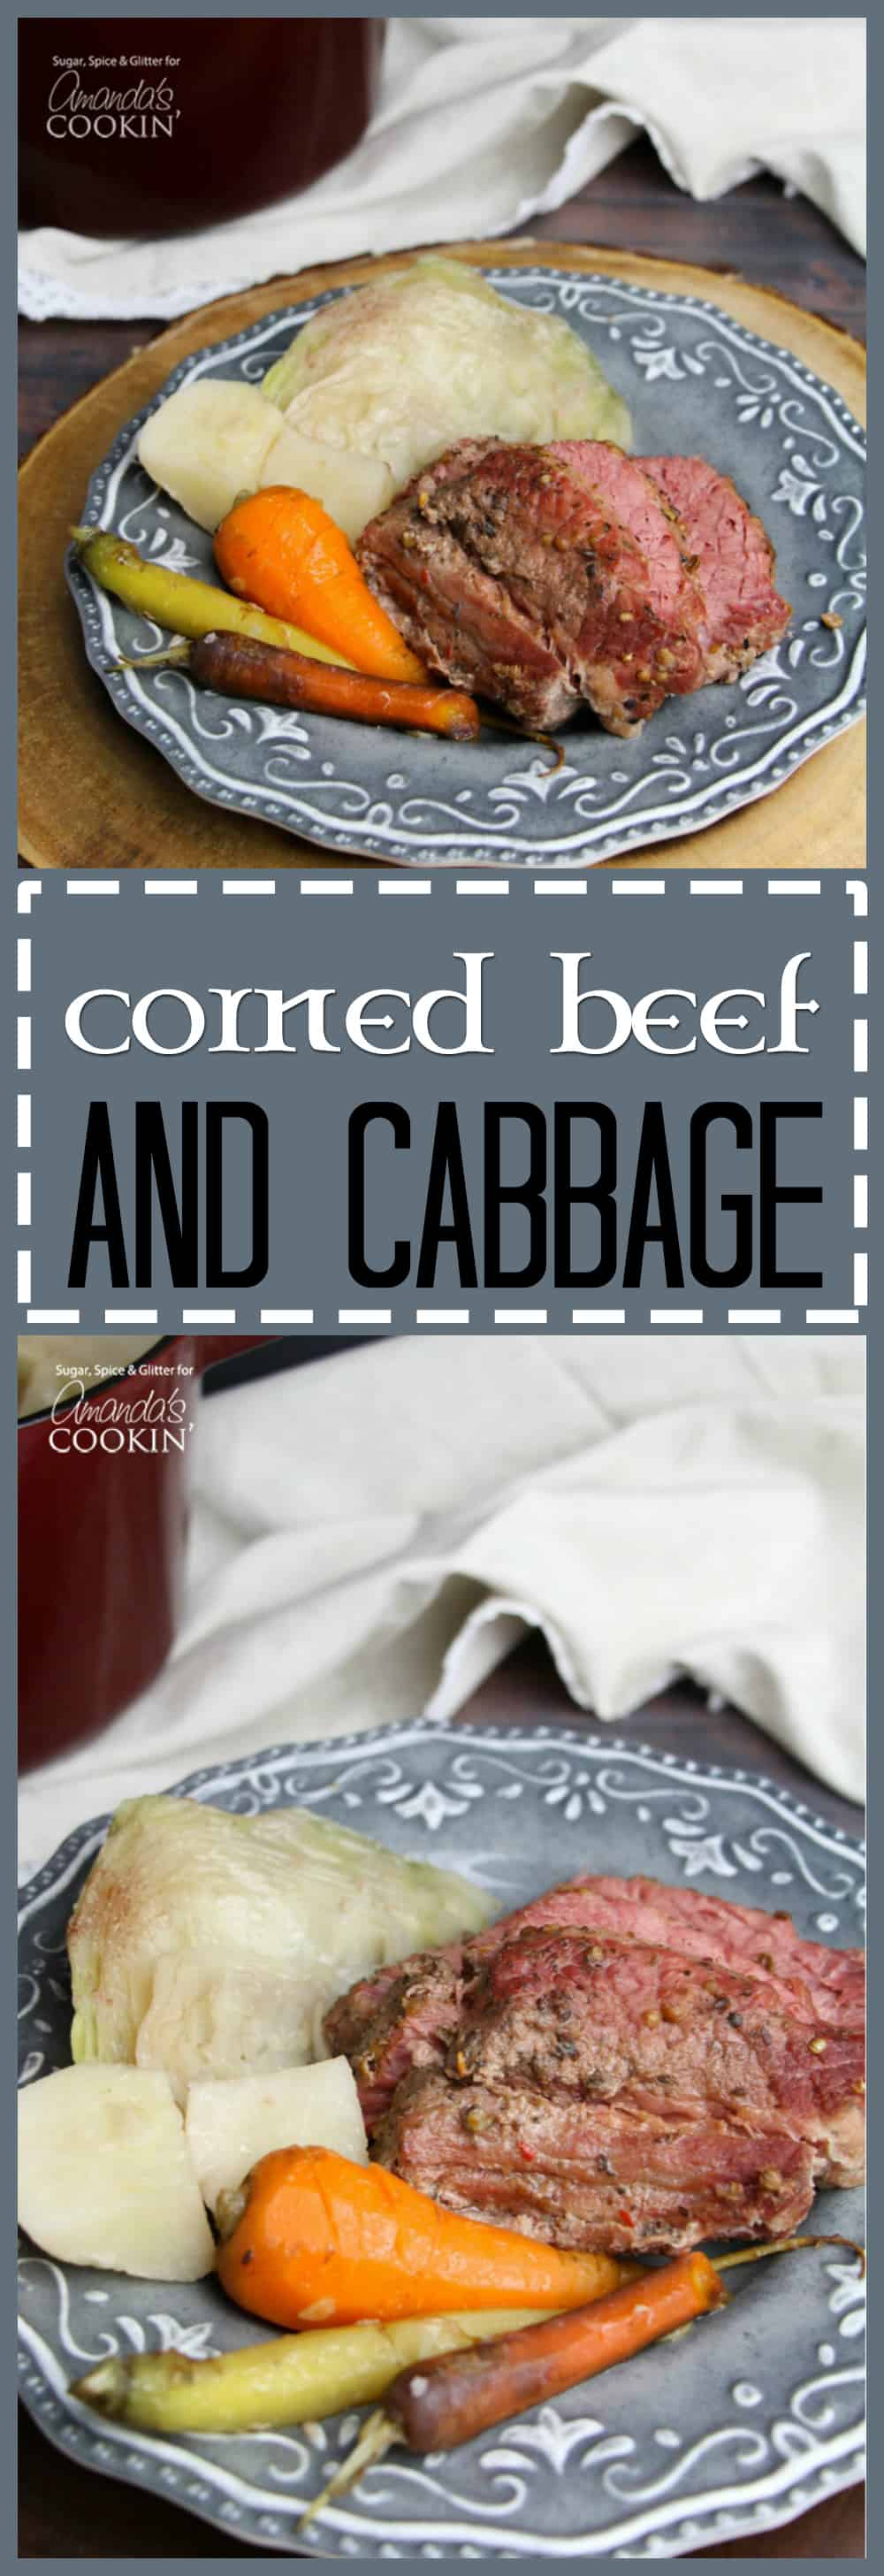 Corned beef and cabbage is a delicious one-pot recipe that has come to symbolize Irish culture in North America, a popular dish for St. Patrick's Day!